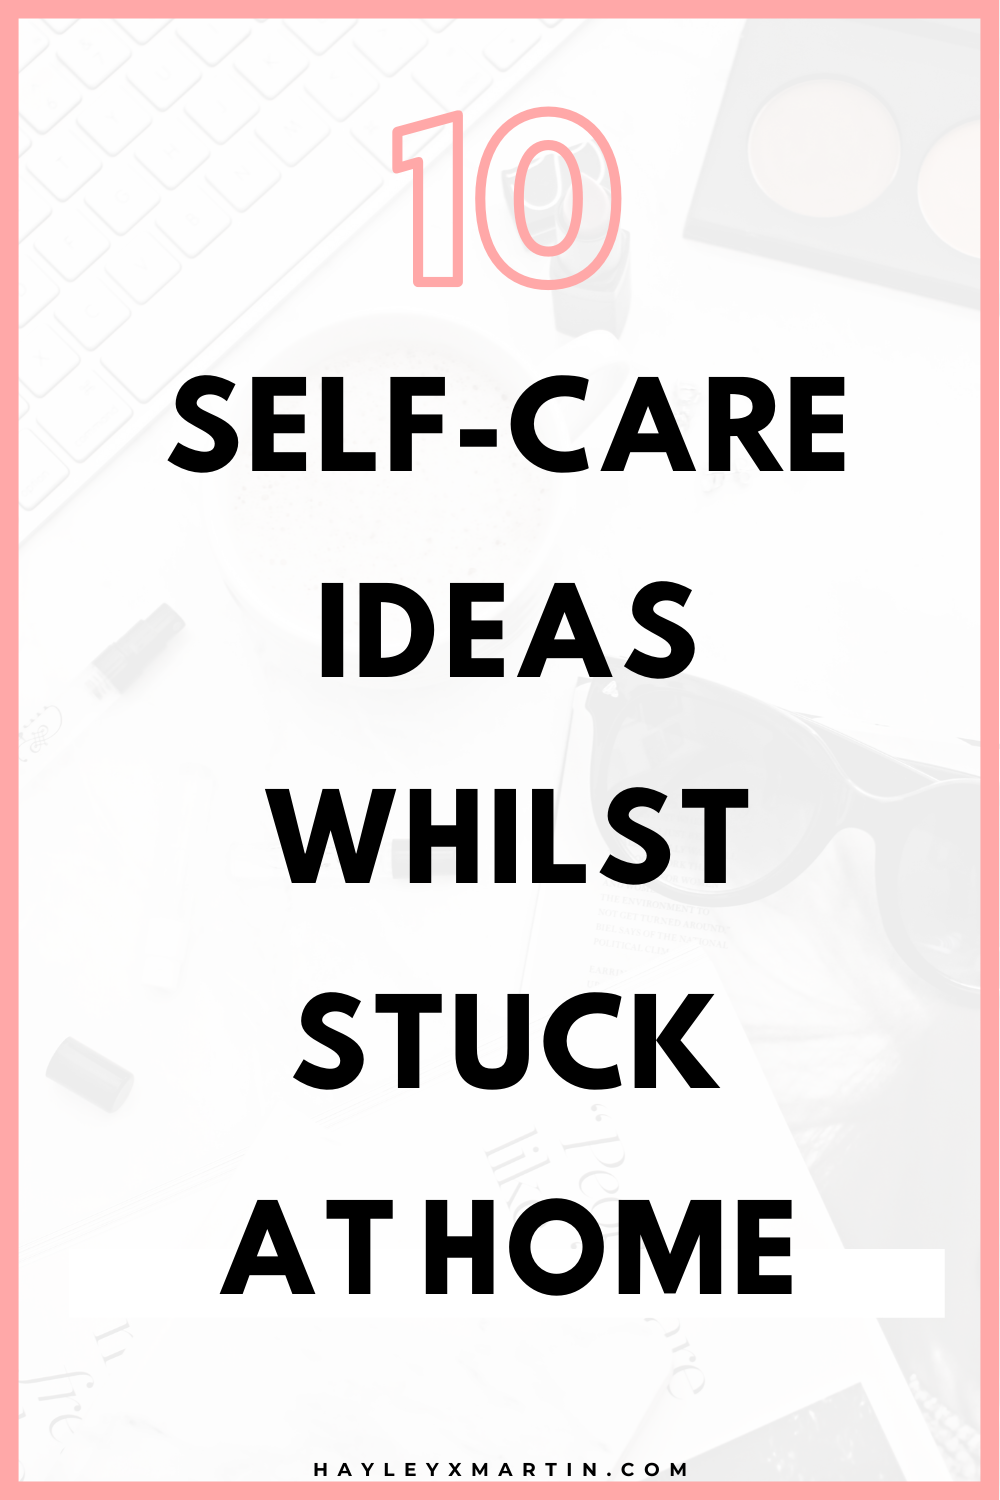 10 SELF-CARE IDEAS WHILST STUCK AT HOME | HAYLEYXMARTIN